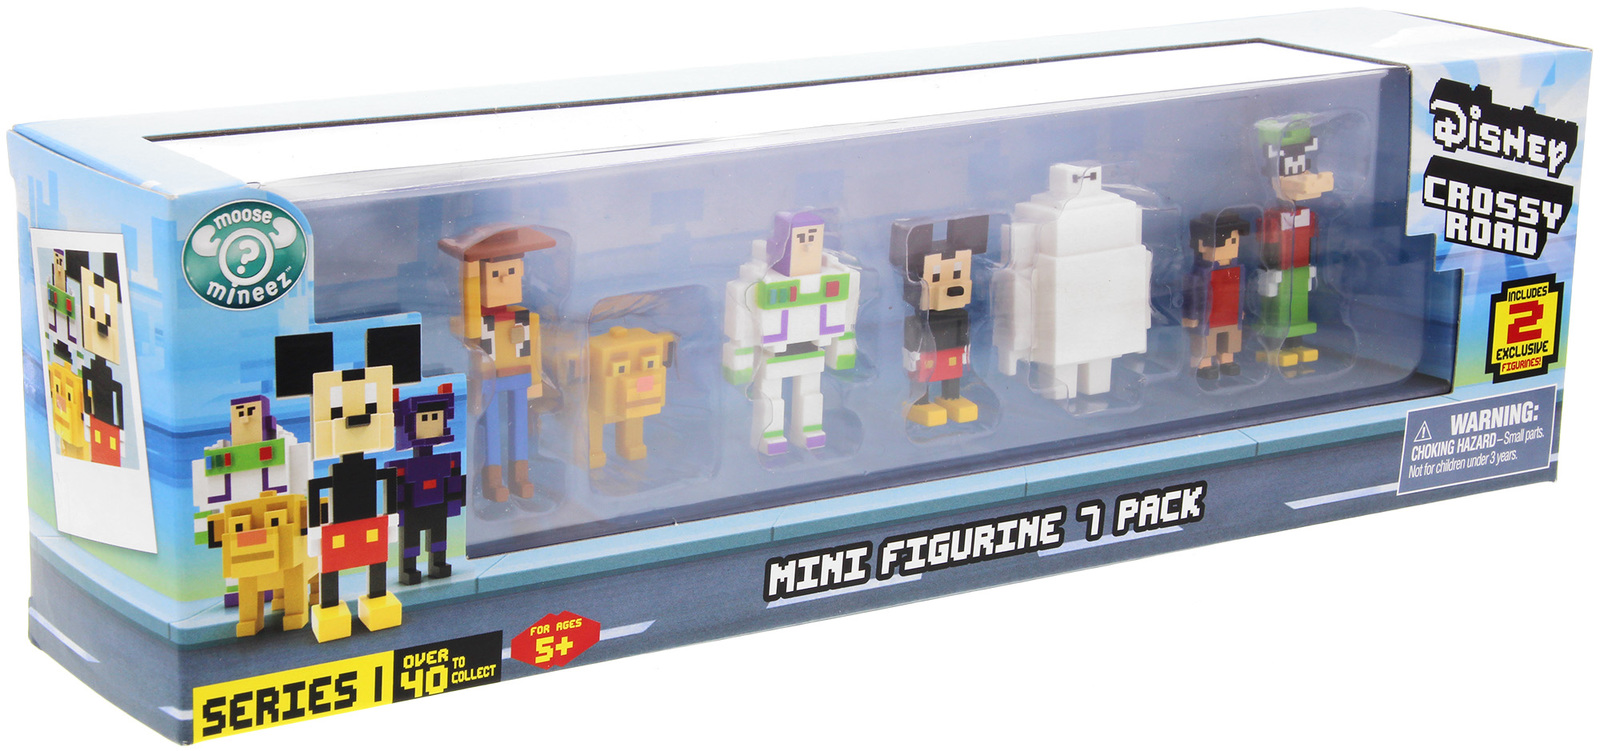 Disney: Crossy Road Minifigure - 7 Pack image